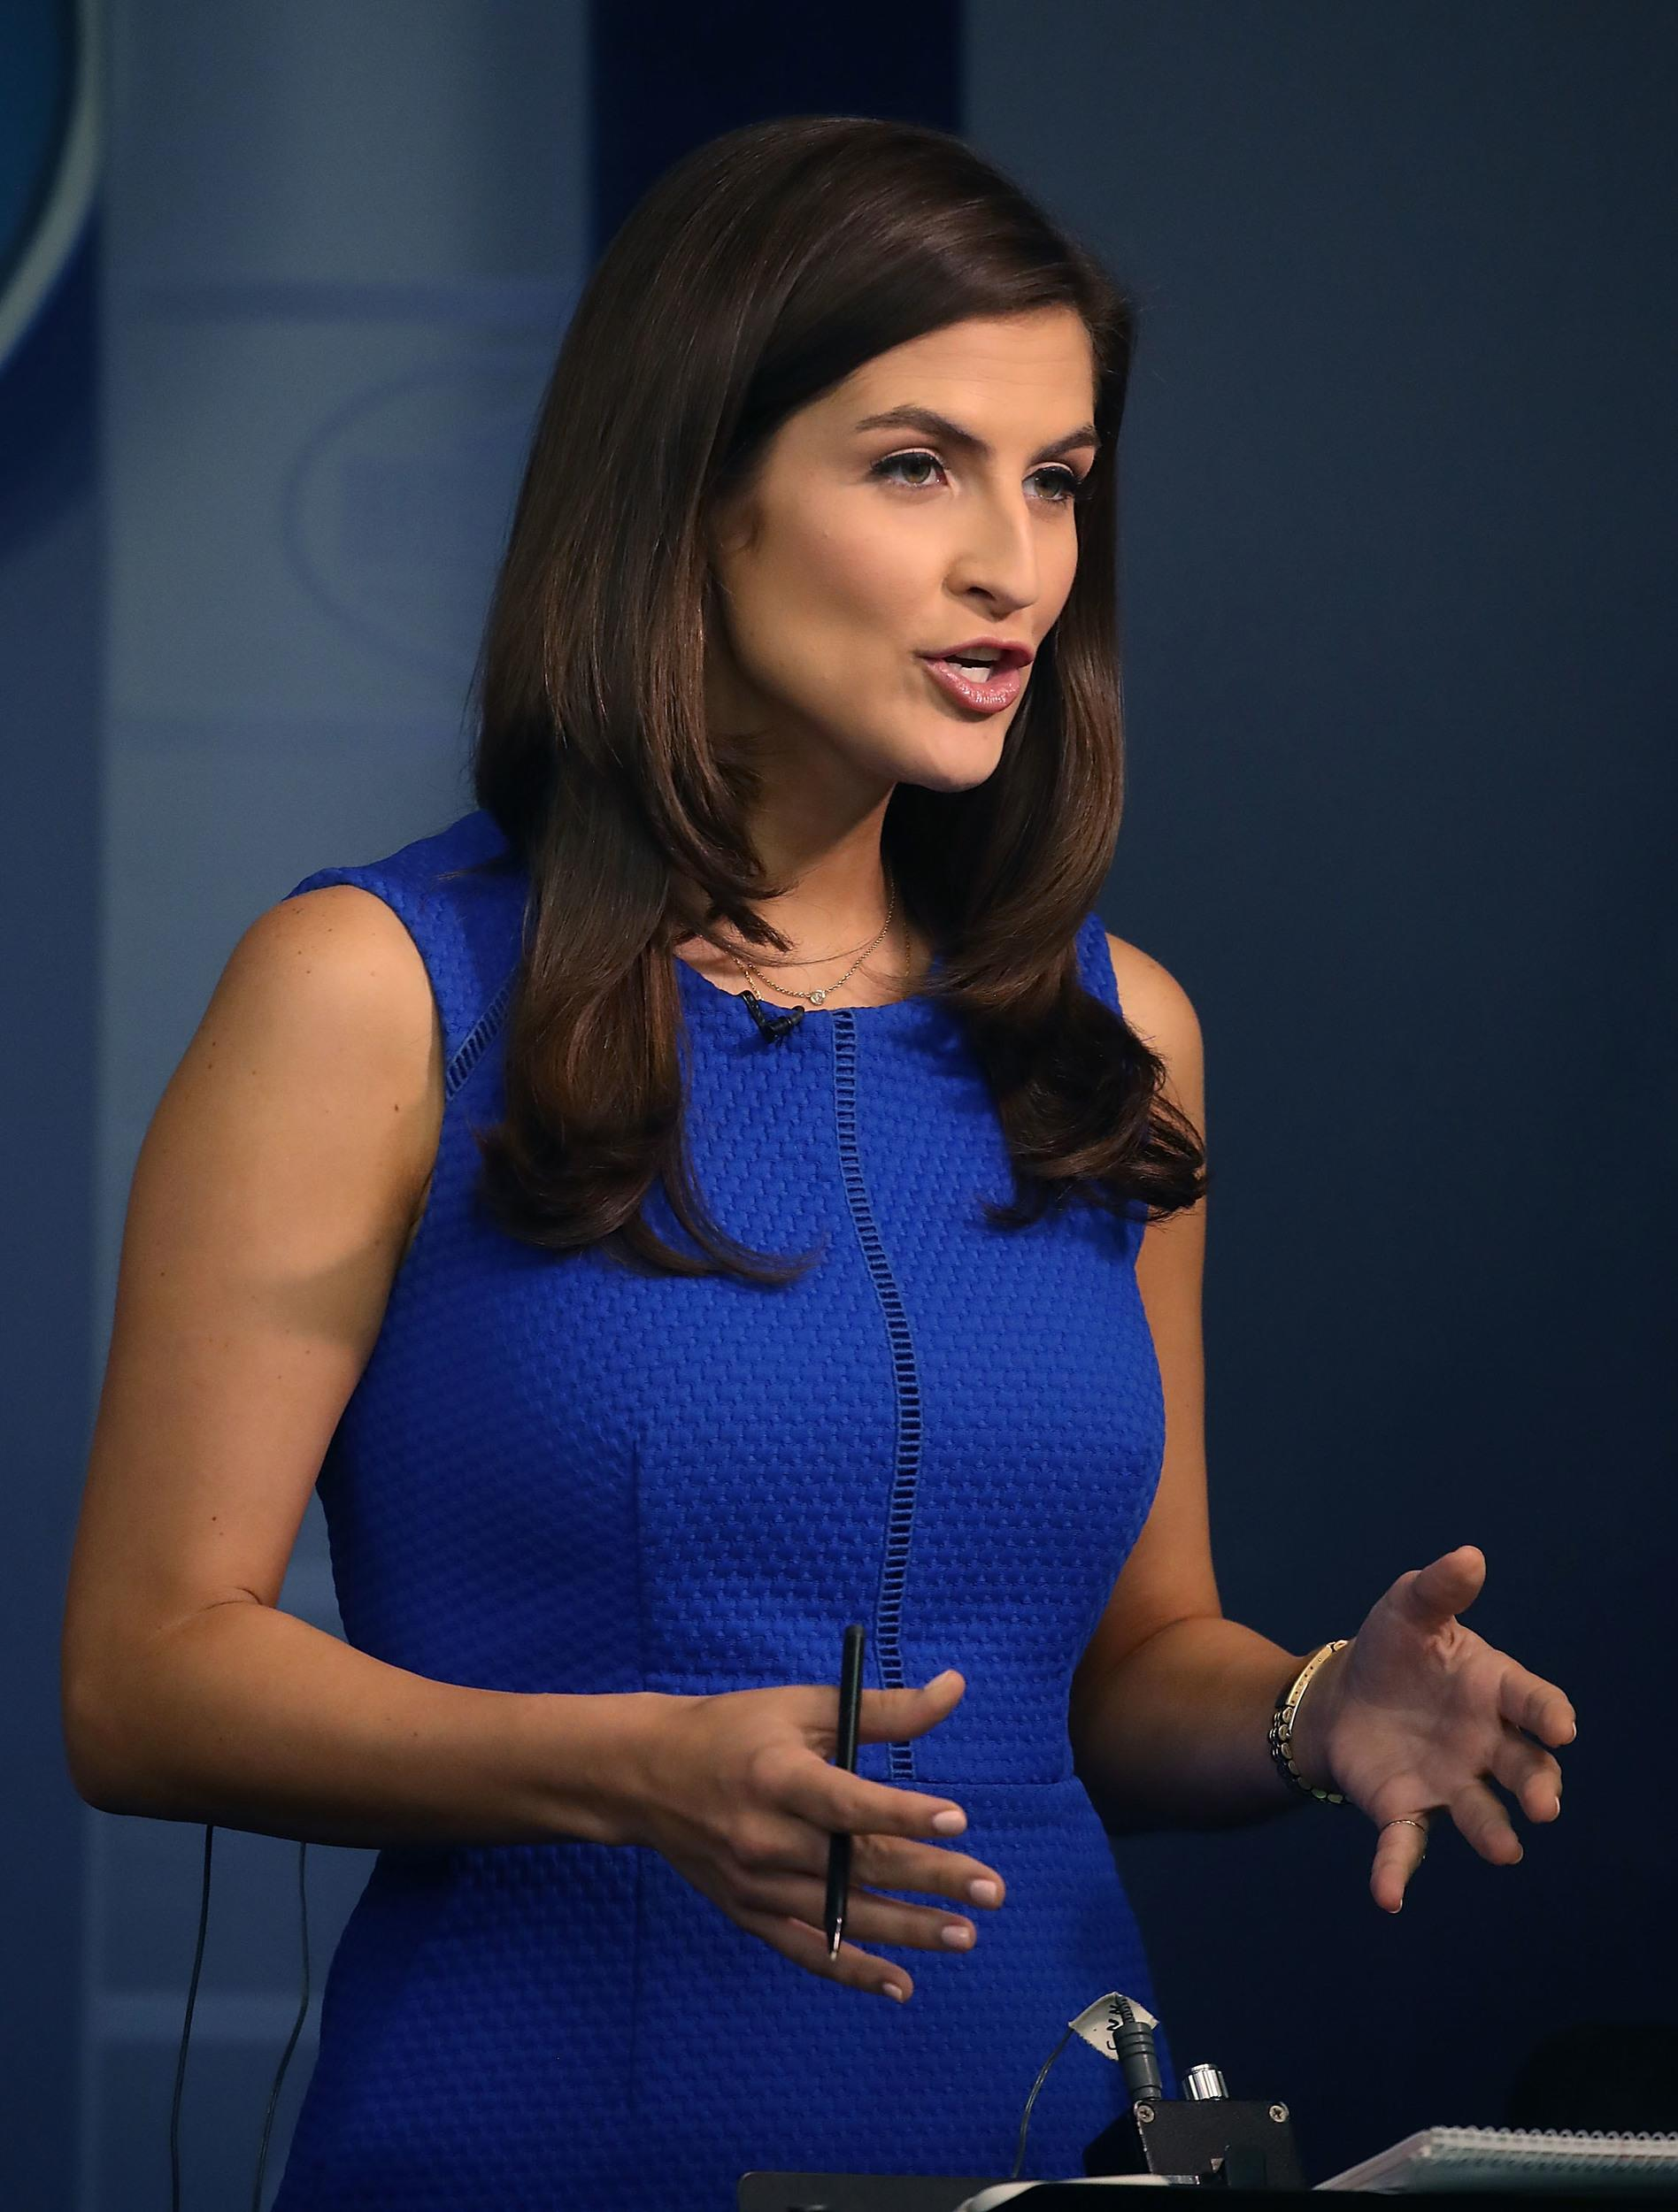 WASHINGTON, DC - AUGUST 02:  CNN News correspondent, Kaitlan Collins, reports from the briefing room at the White House, on August 2, 2018 in Washington, DC. The administration's top security officials briefed the media on election interference. (Photo by Mark Wilson/Getty Images)